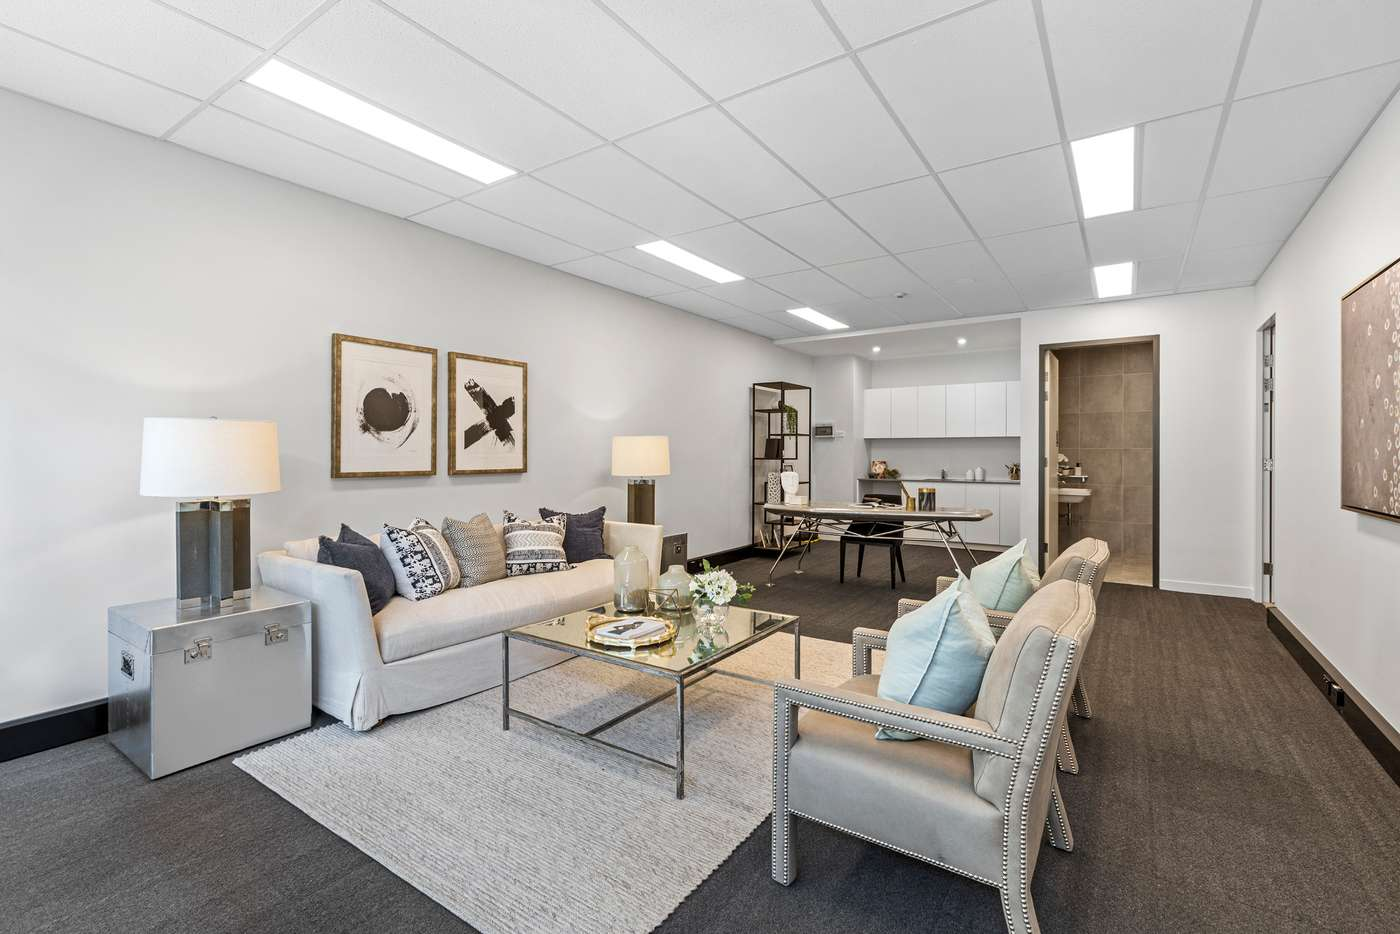 Sixth view of Homely apartment listing, 104/481 Willoughby Road, Willoughby NSW 2068